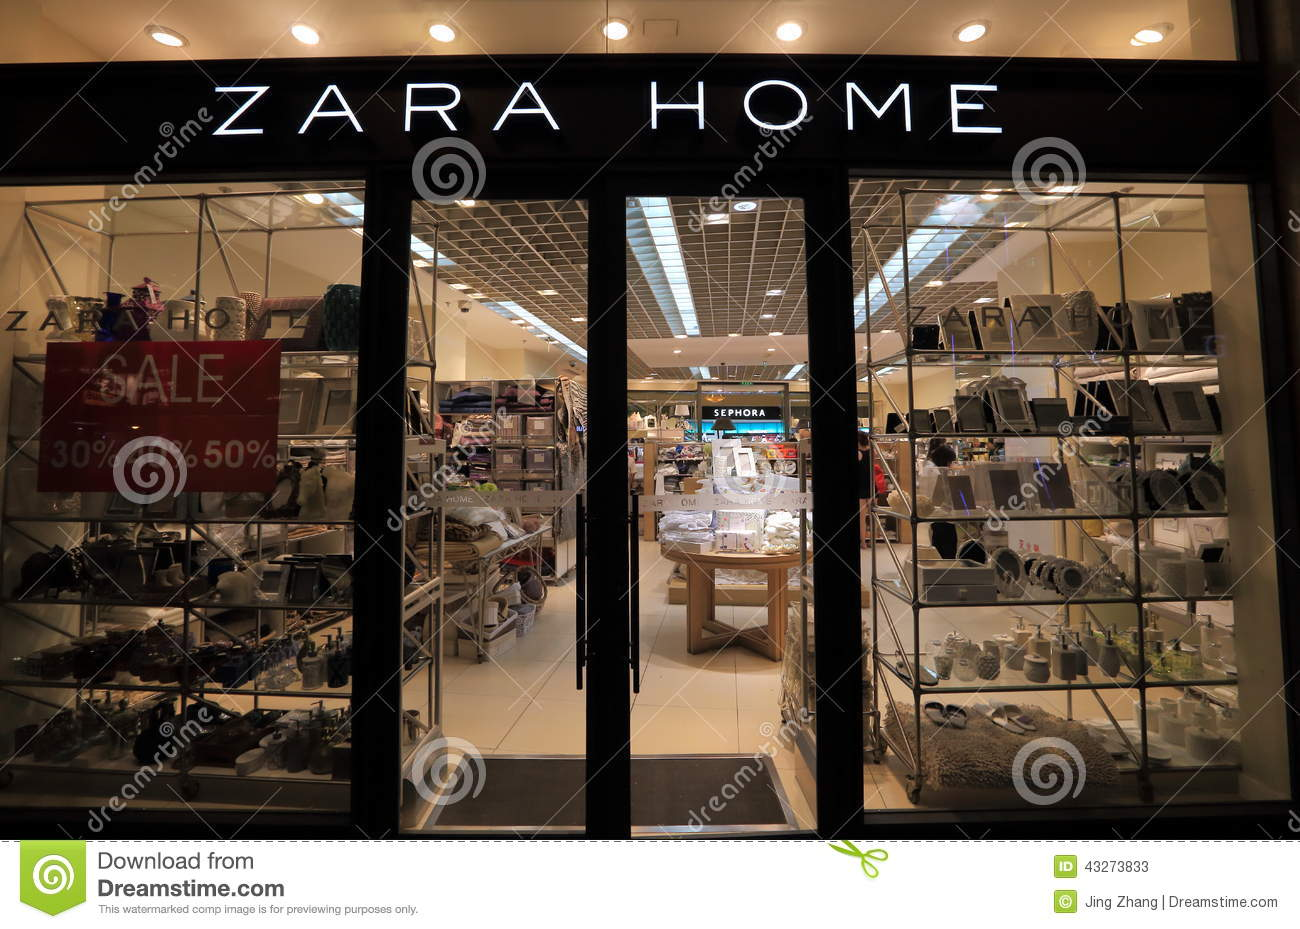 771f0242 Zara home editorial stock photo. Image of dress, clothes - 43273833